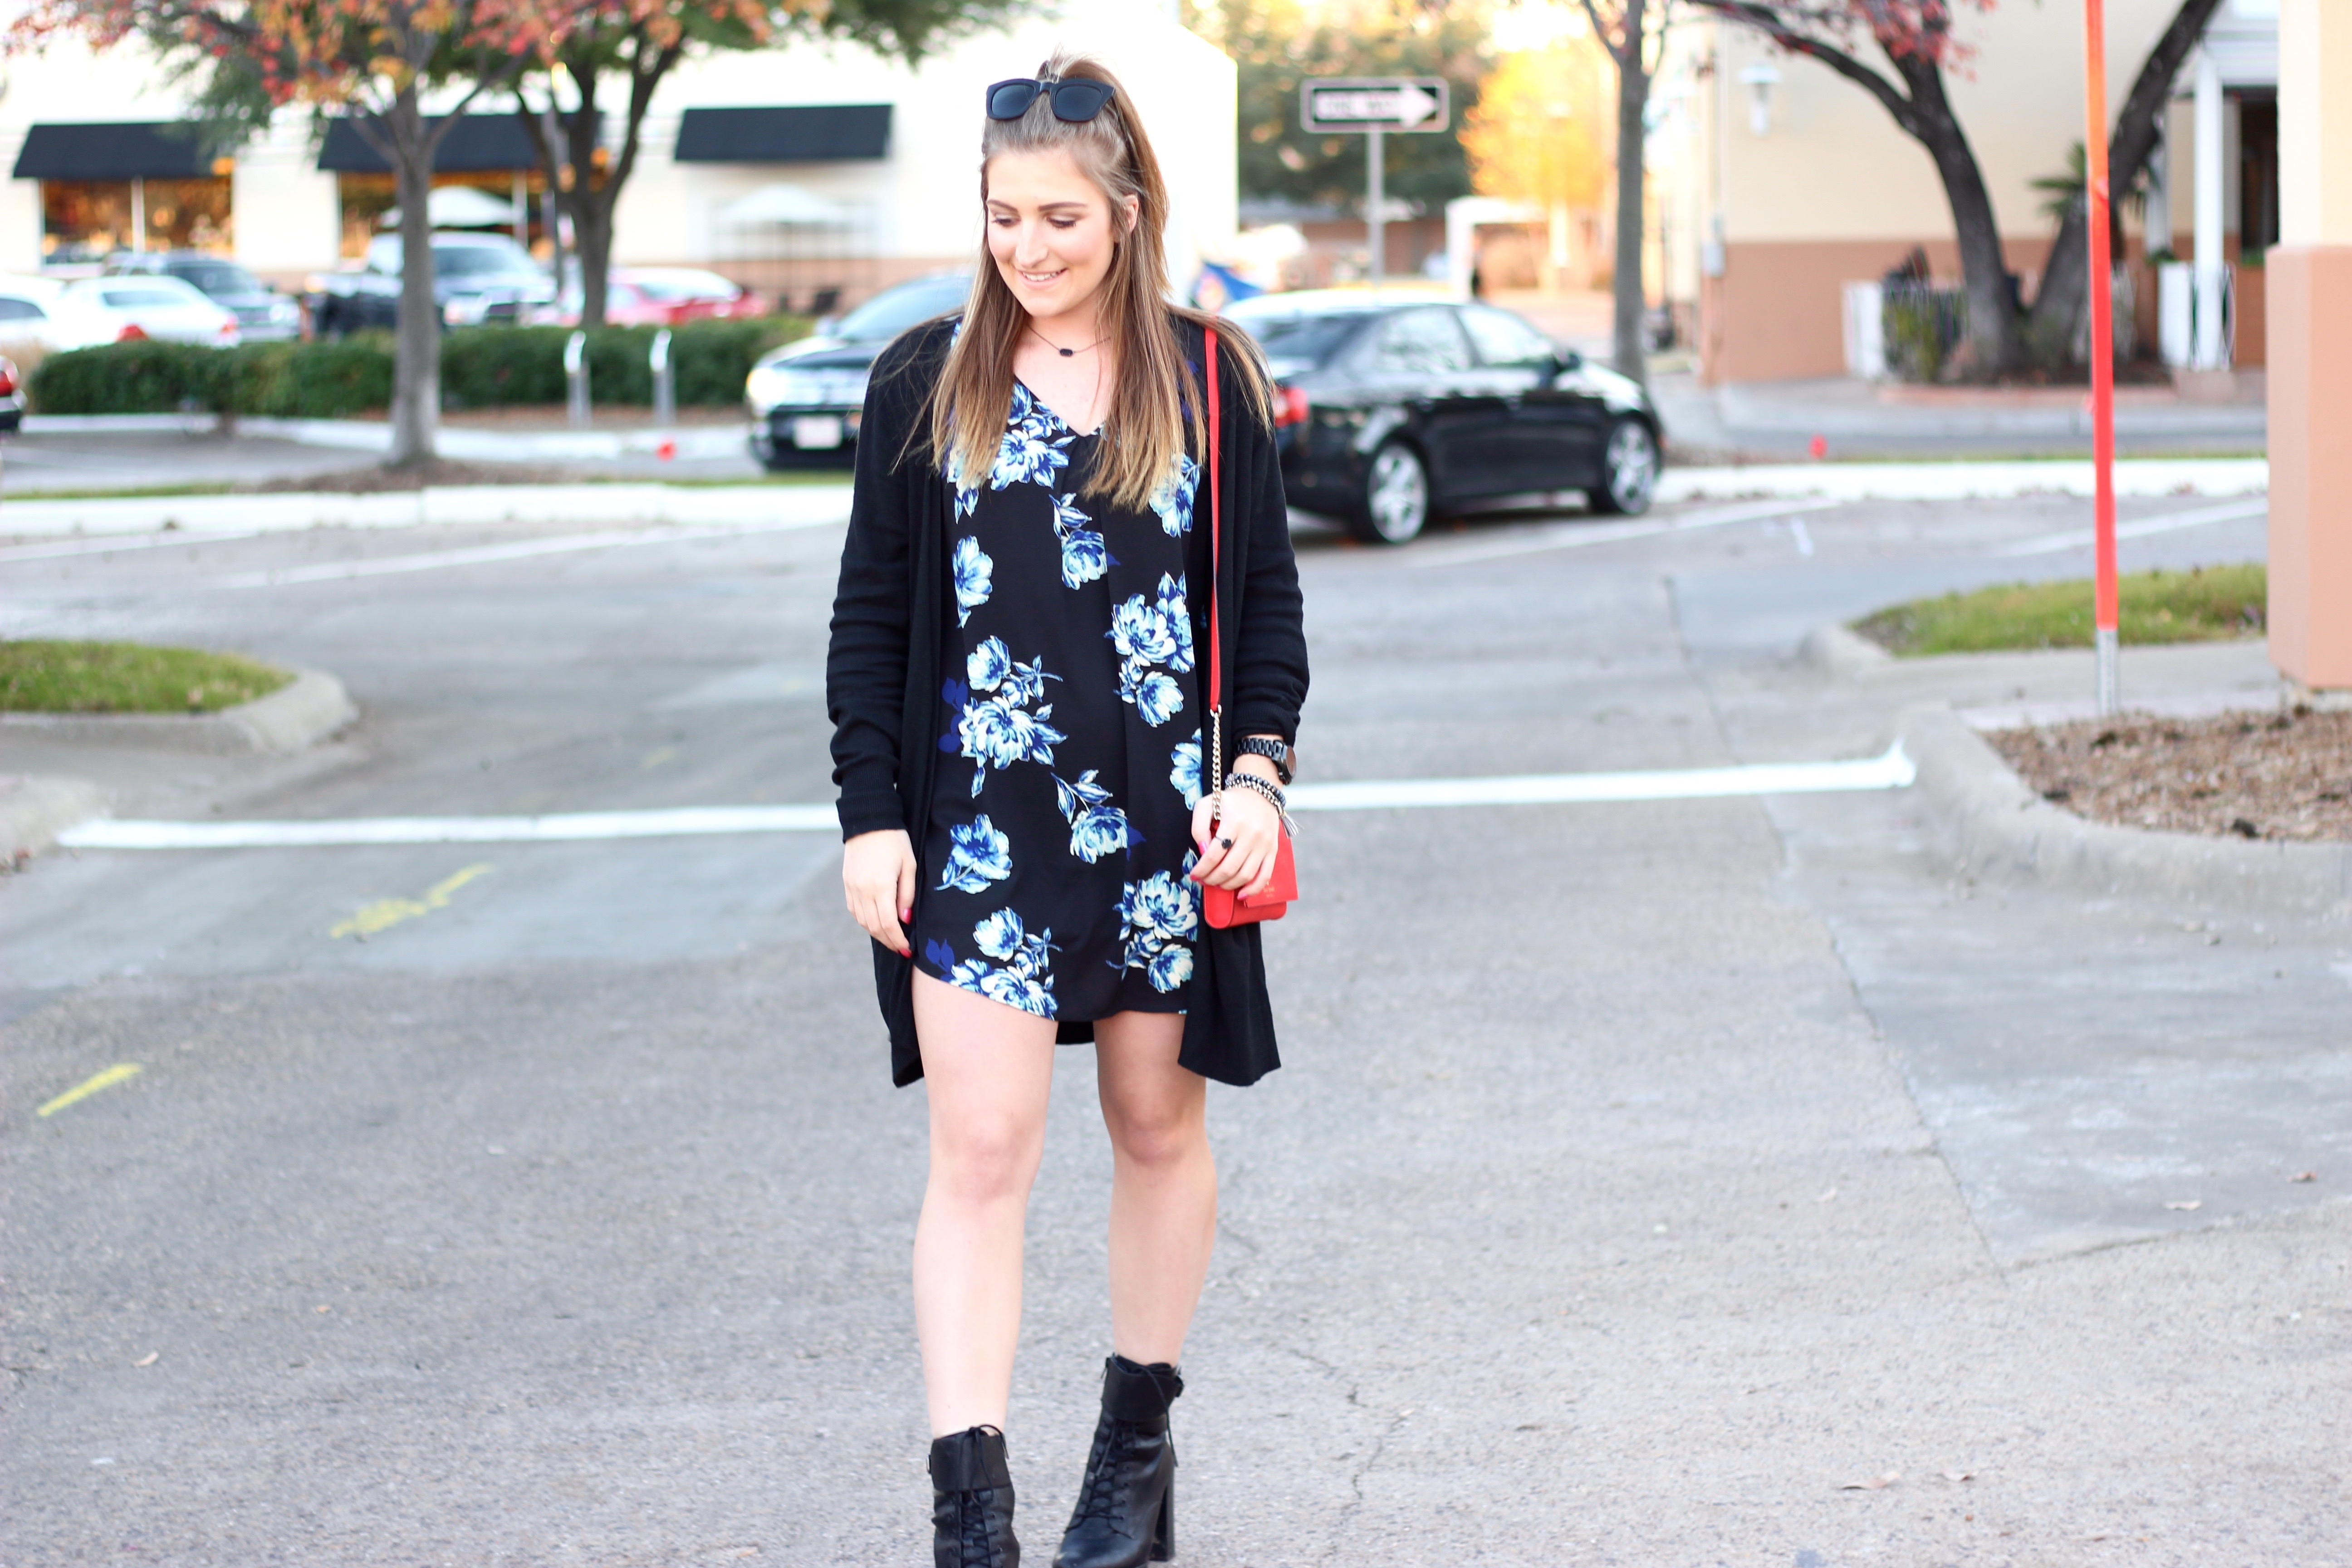 walking girl in dallas with an edgy look